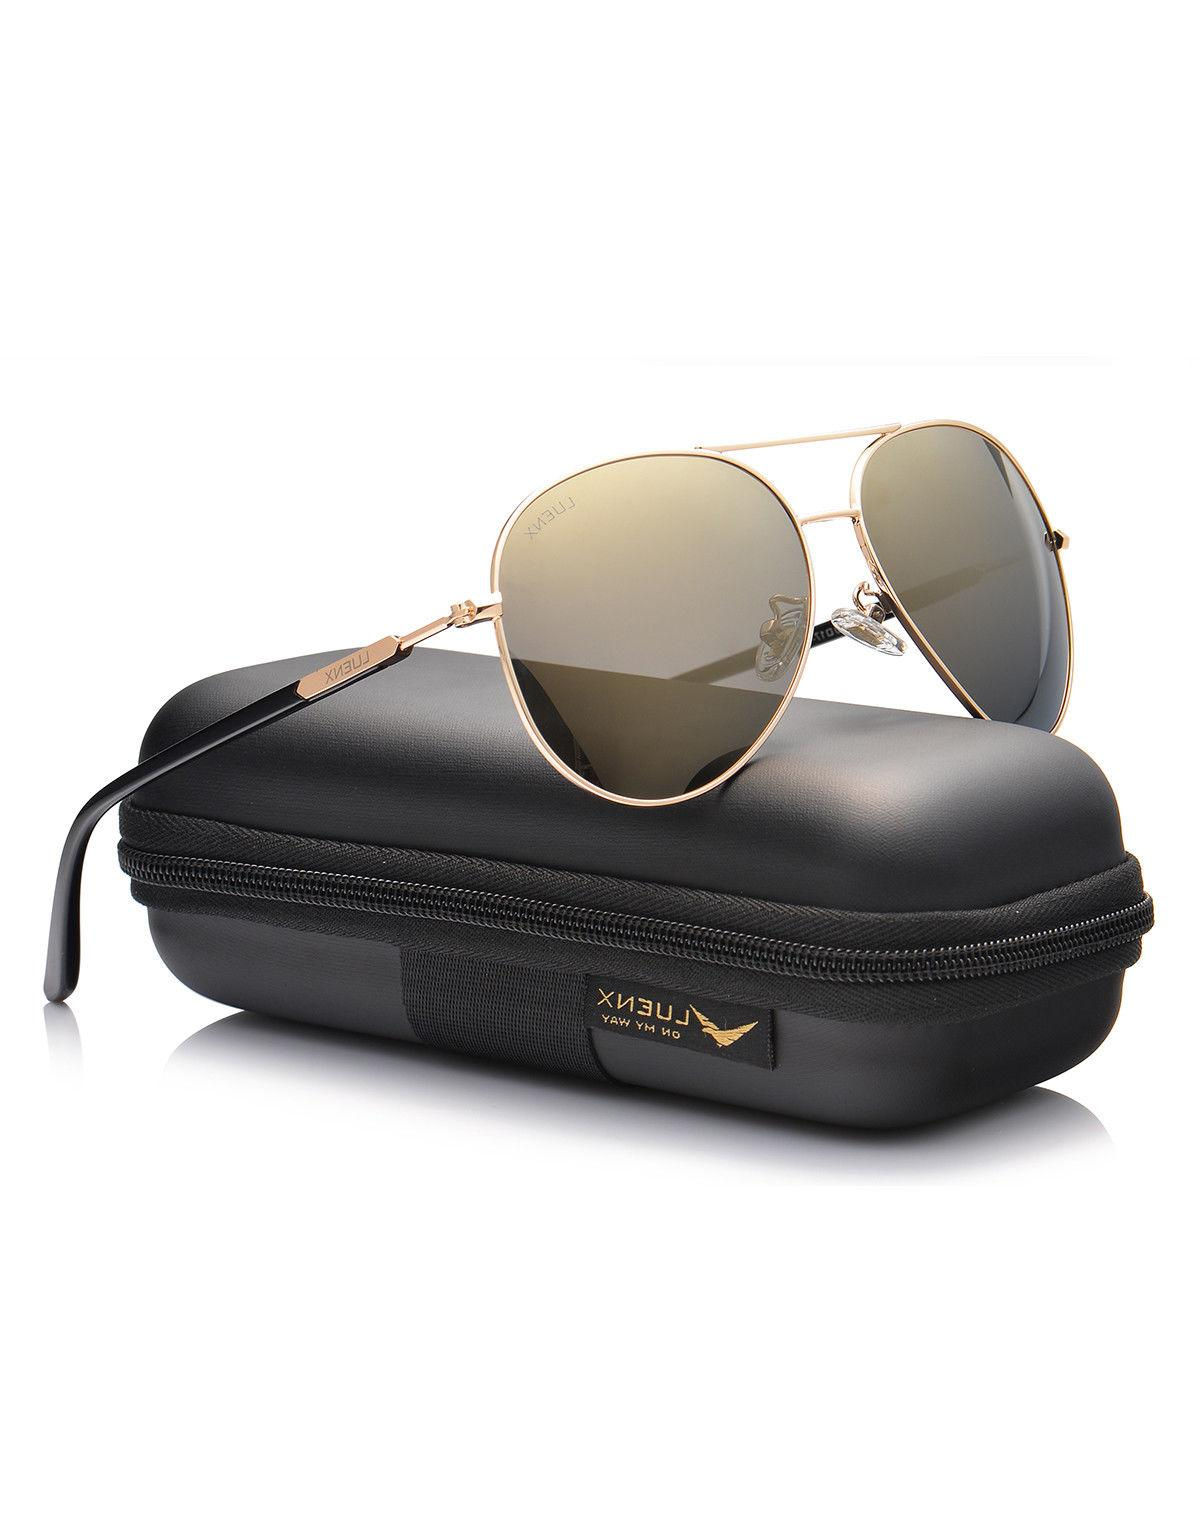 Luenx Aviator Sunglasses - Polarized Gold Mirror Lens